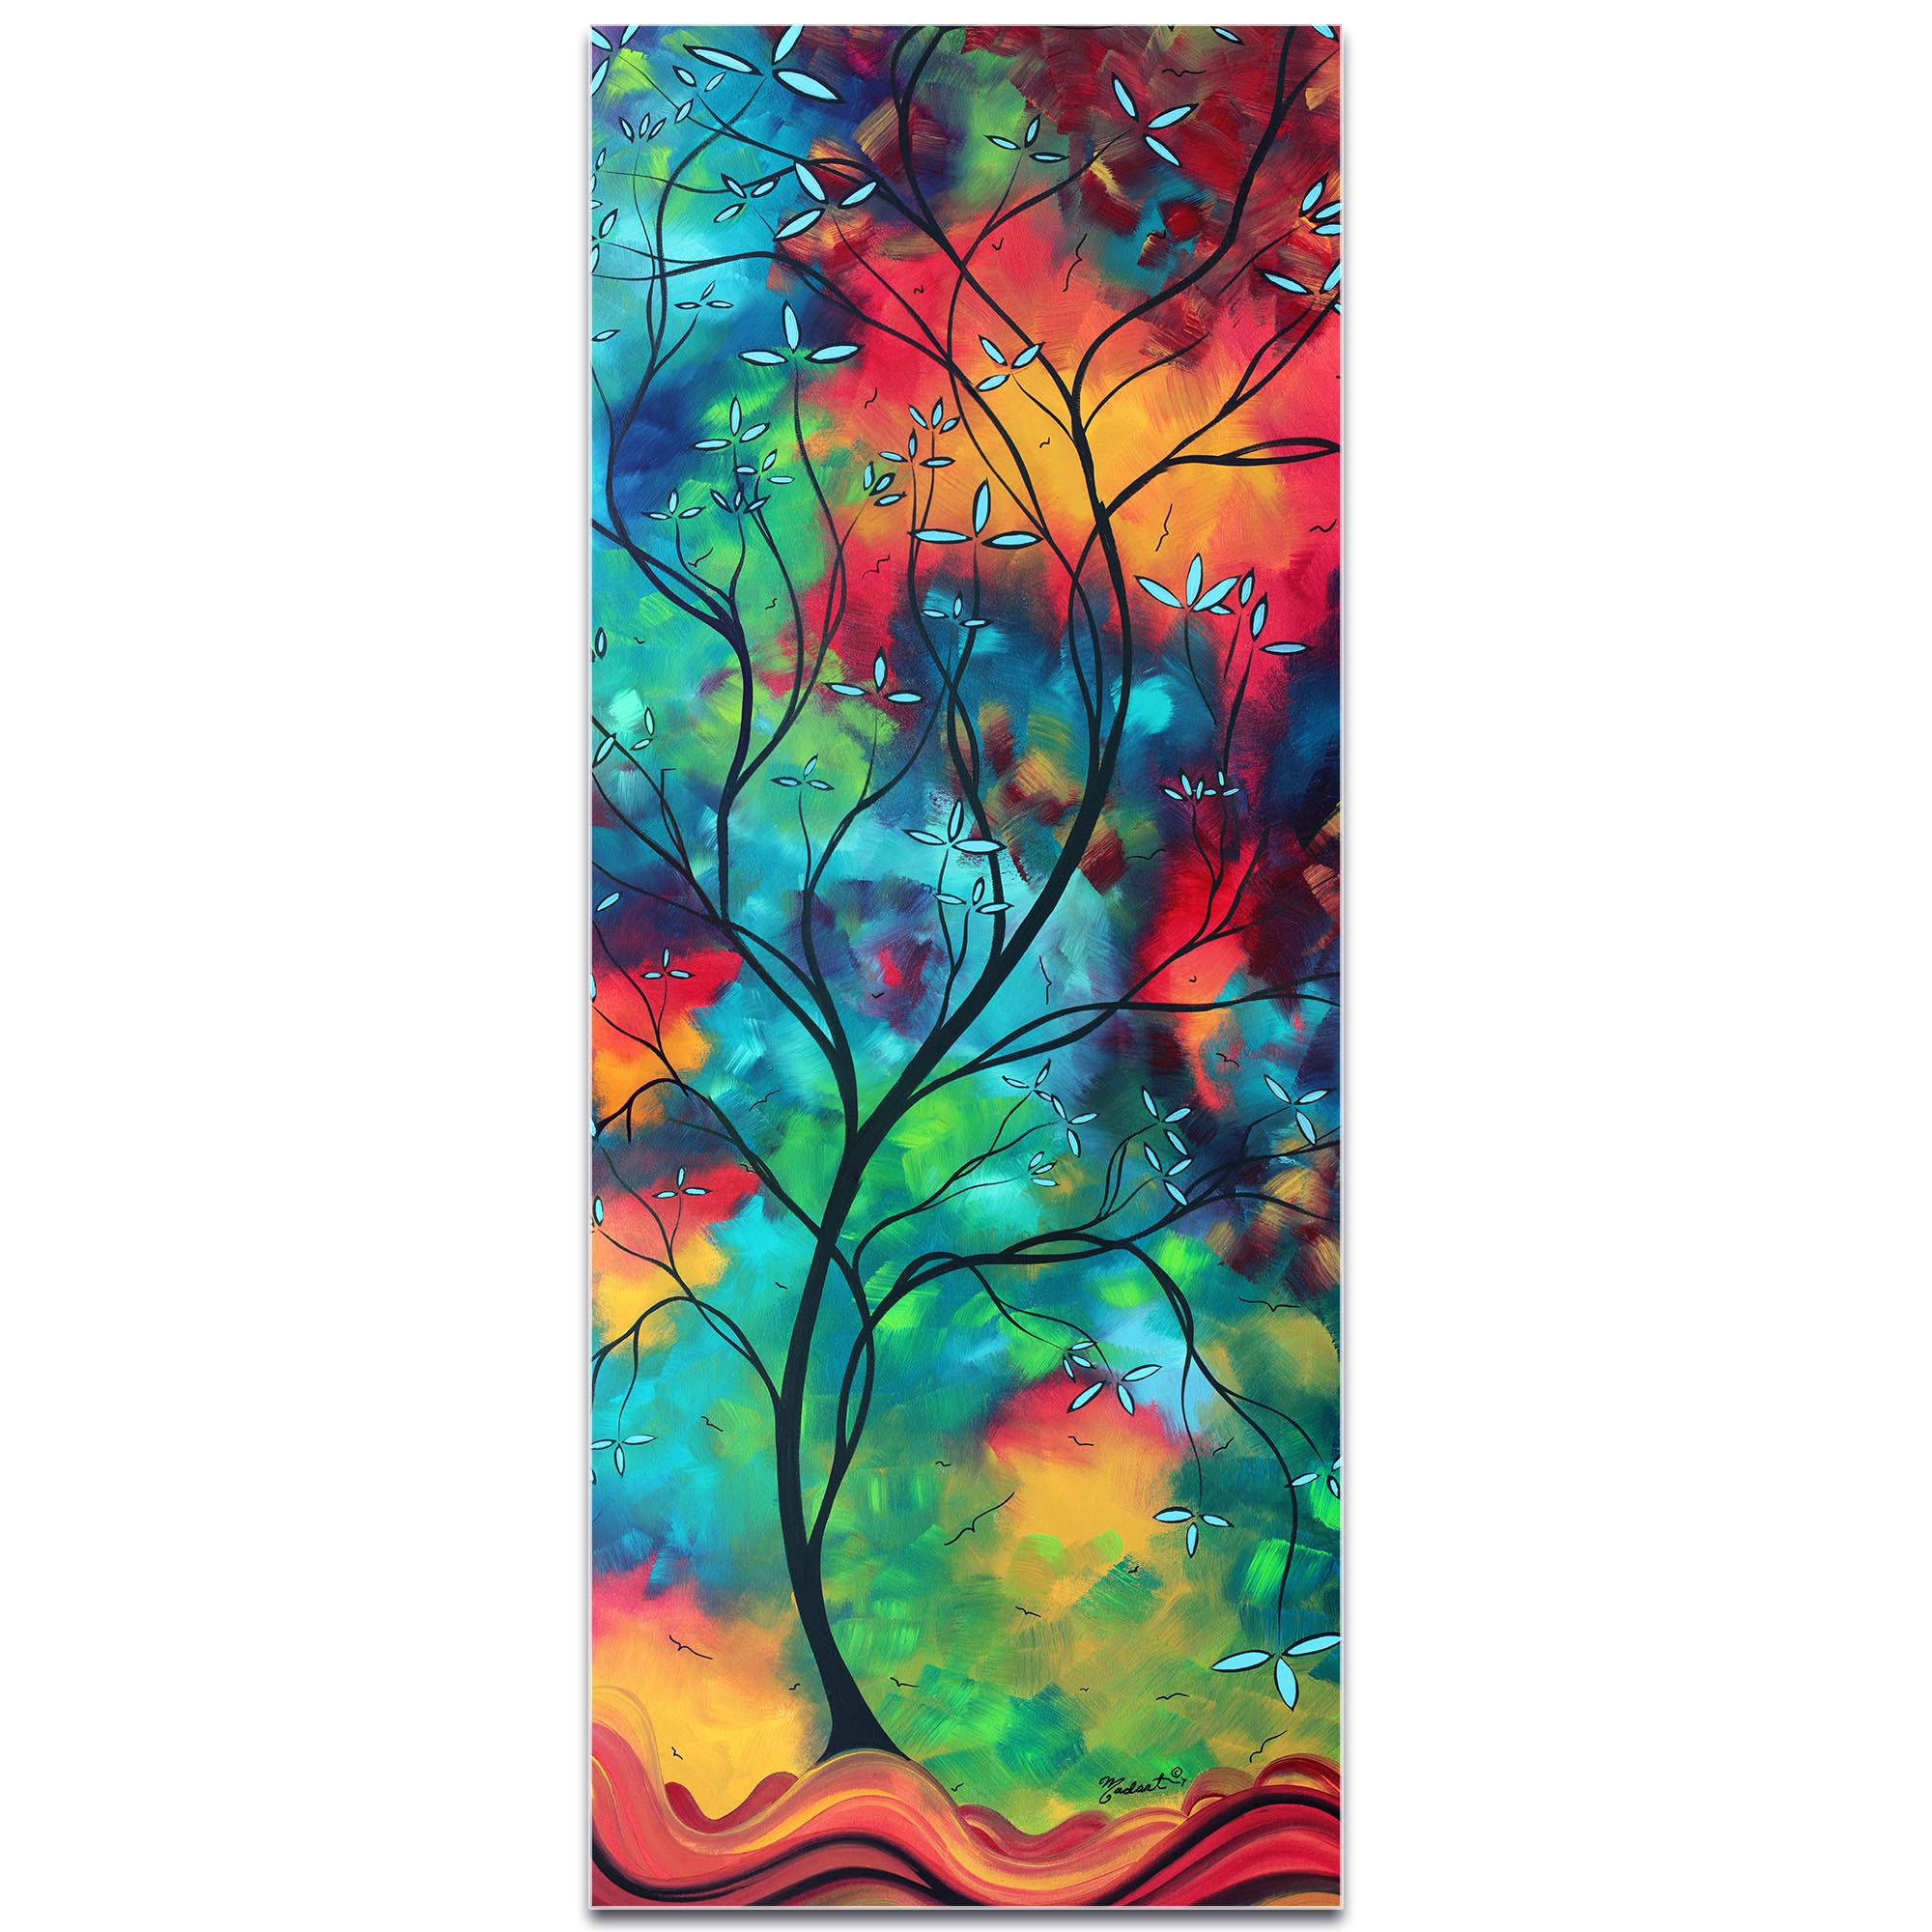 Landscape Painting 'Colored Inspiration' - Abstract Tree Art on Metal or Acrylic - Image 2